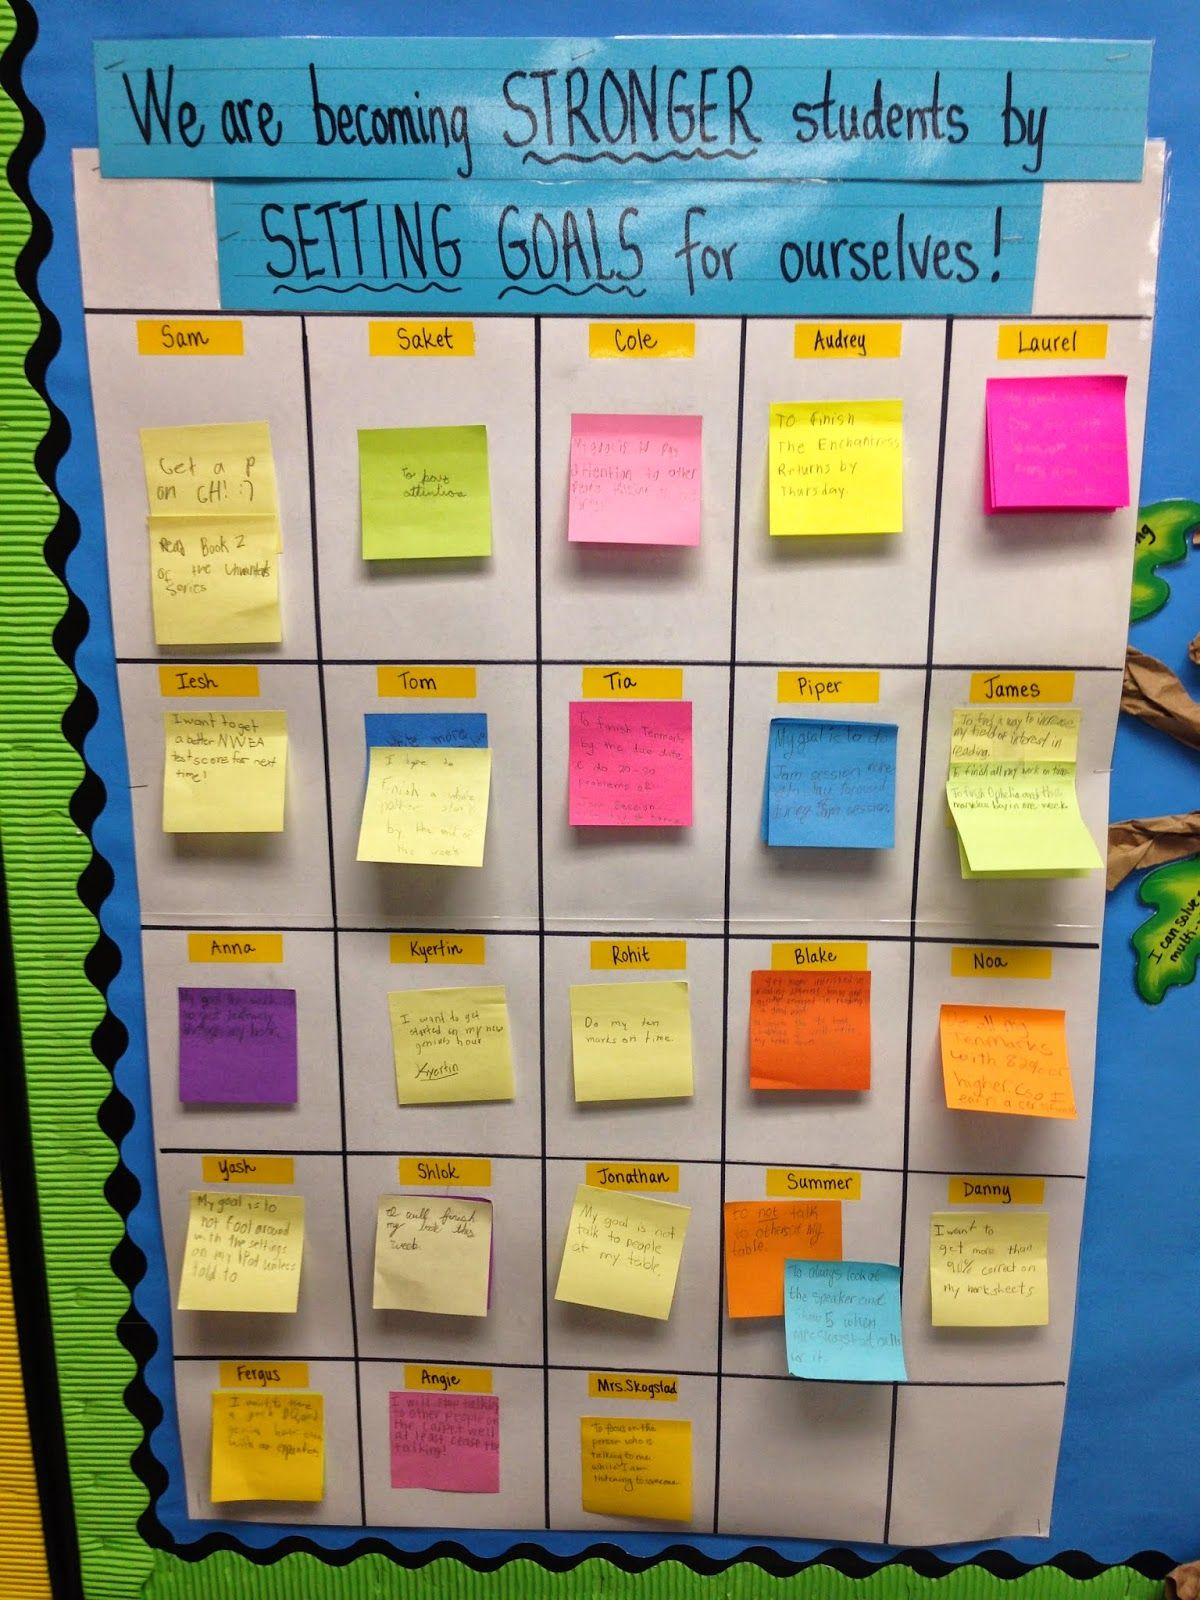 4 Really Cool Ways Teachers Use Post-it Notes in the Classroom ...